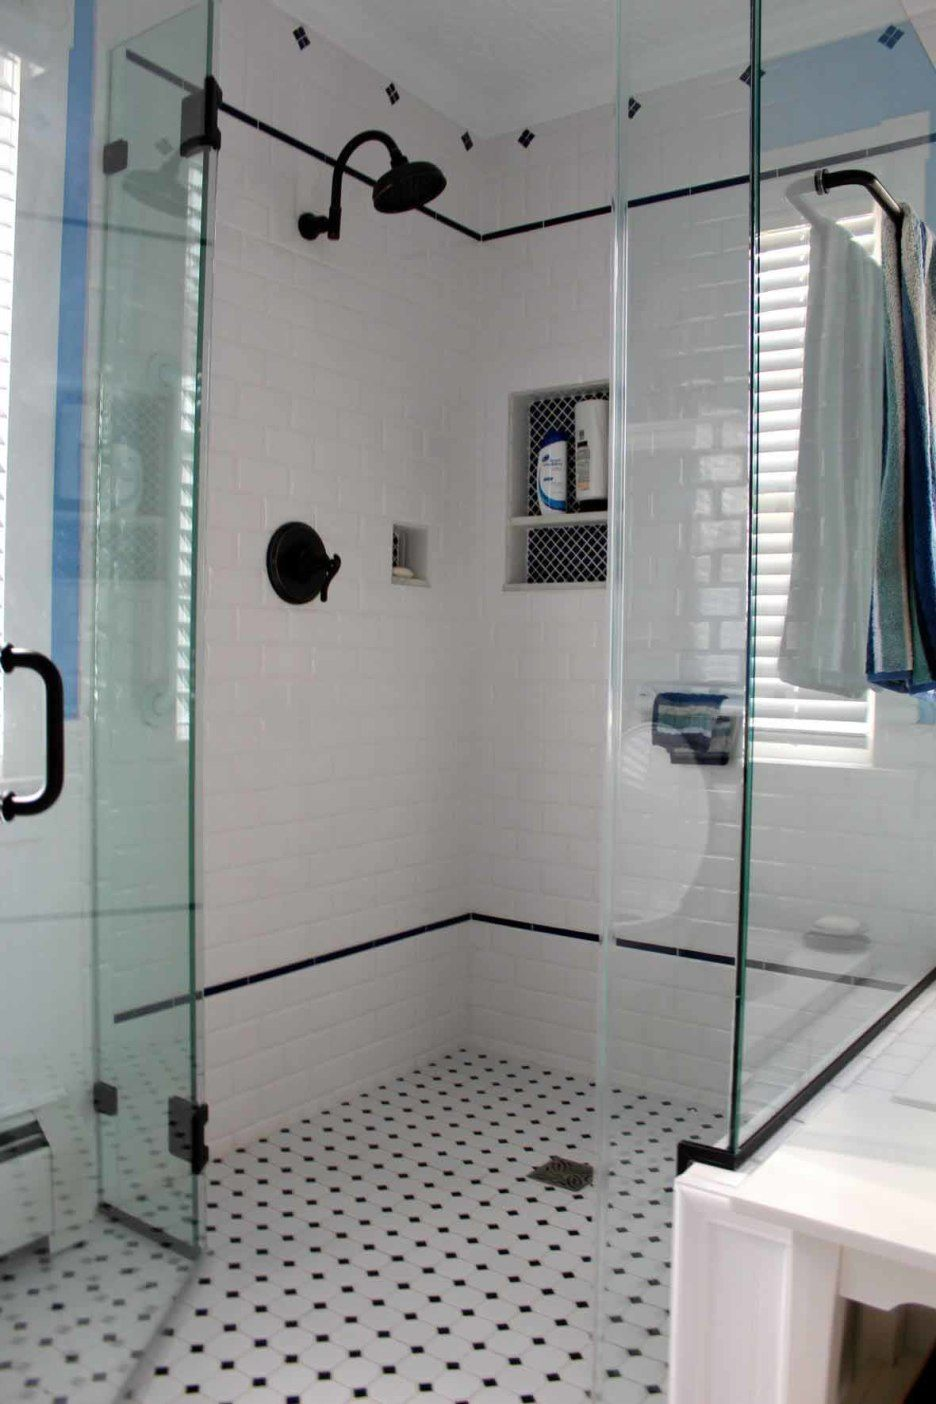 Bathroom White And Black Diamond Mosaic Tile Floor For Shower With Glass Door And Black Decoration For Small Bathroom Cool Bathroom Floor Ti Shower Tile Designs Black White Tiles Bathroom White